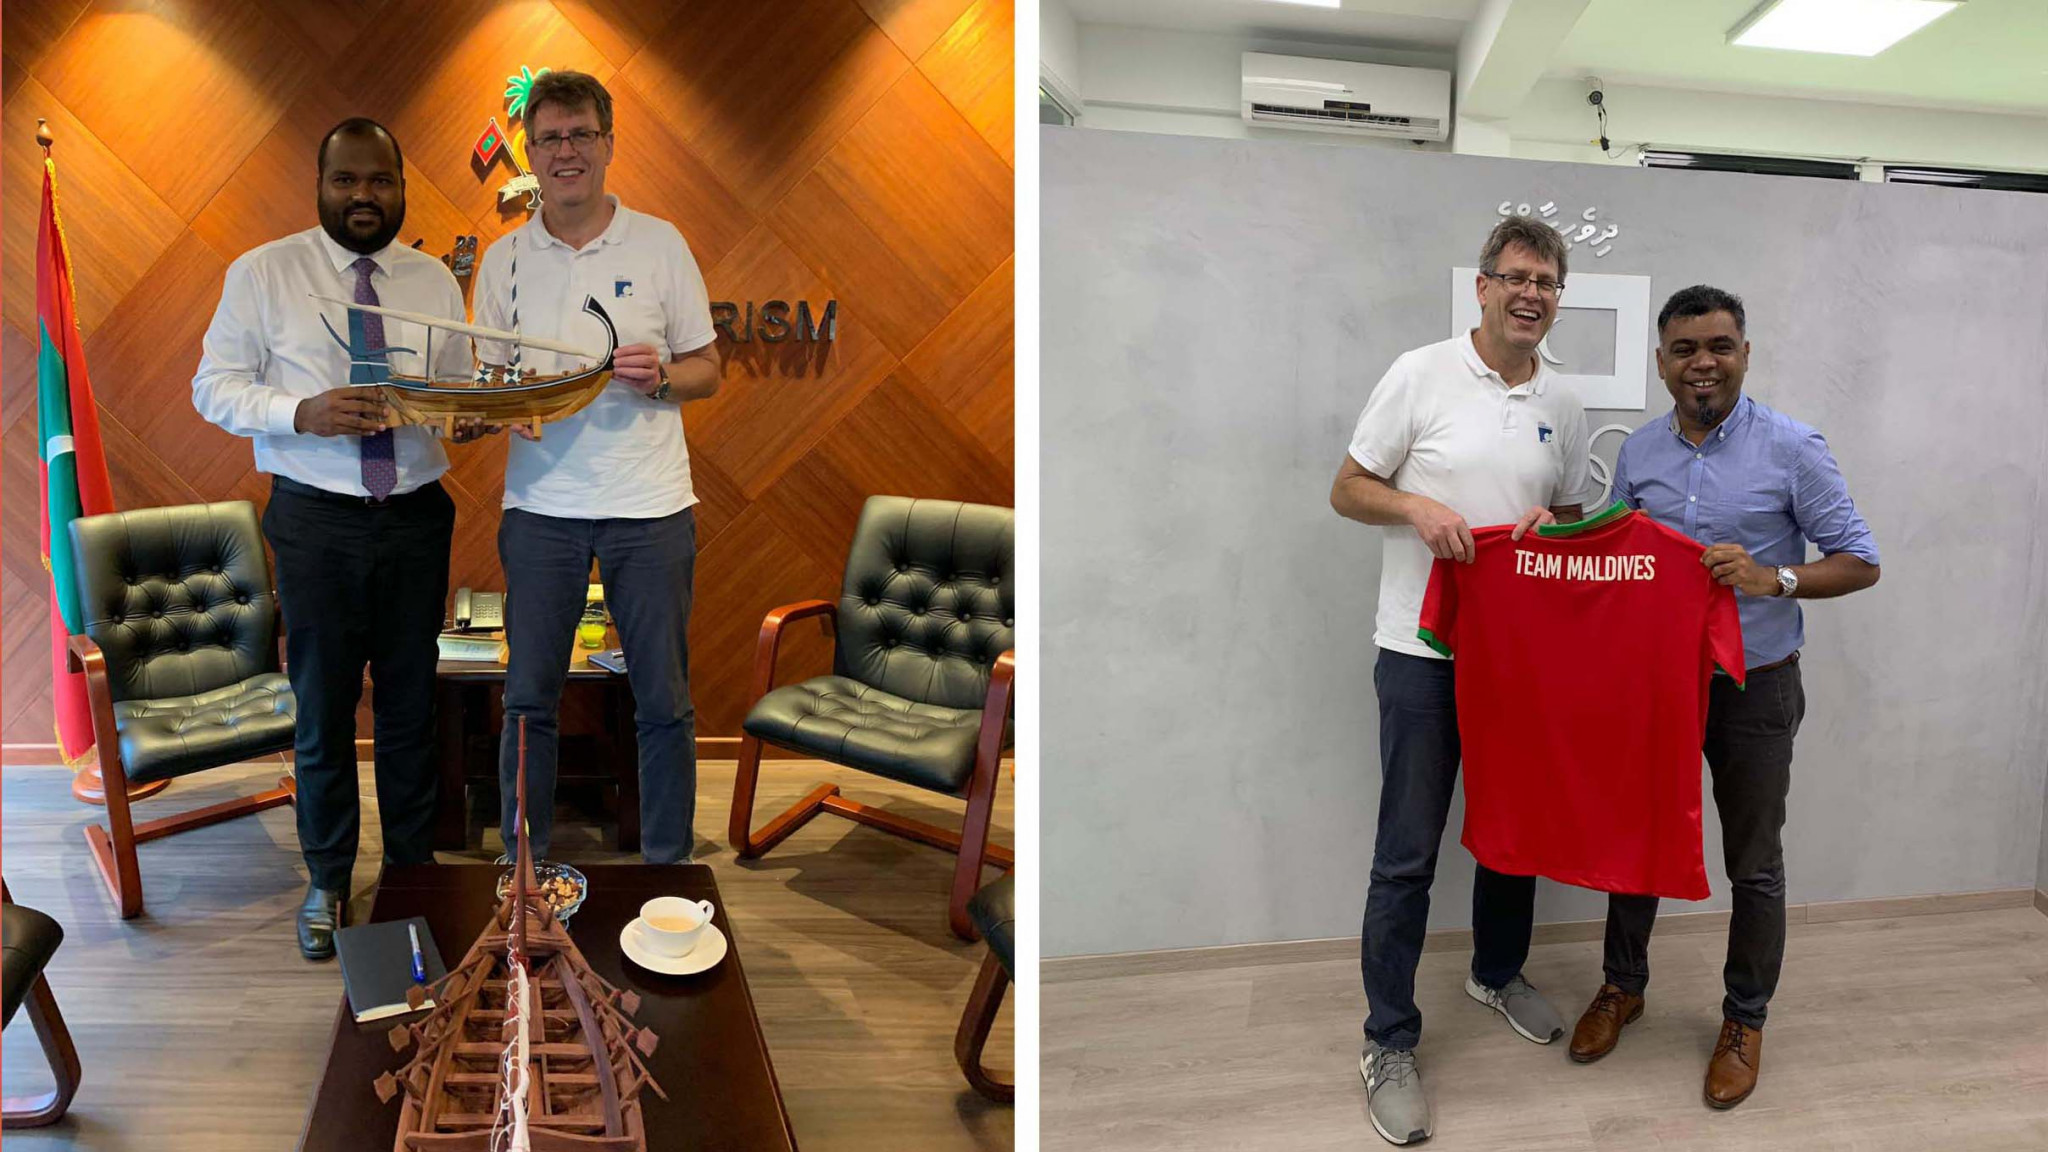 Thomas Weikert is the first President of an International Federation to visit the Maldives Olympic Committee ©ITTF